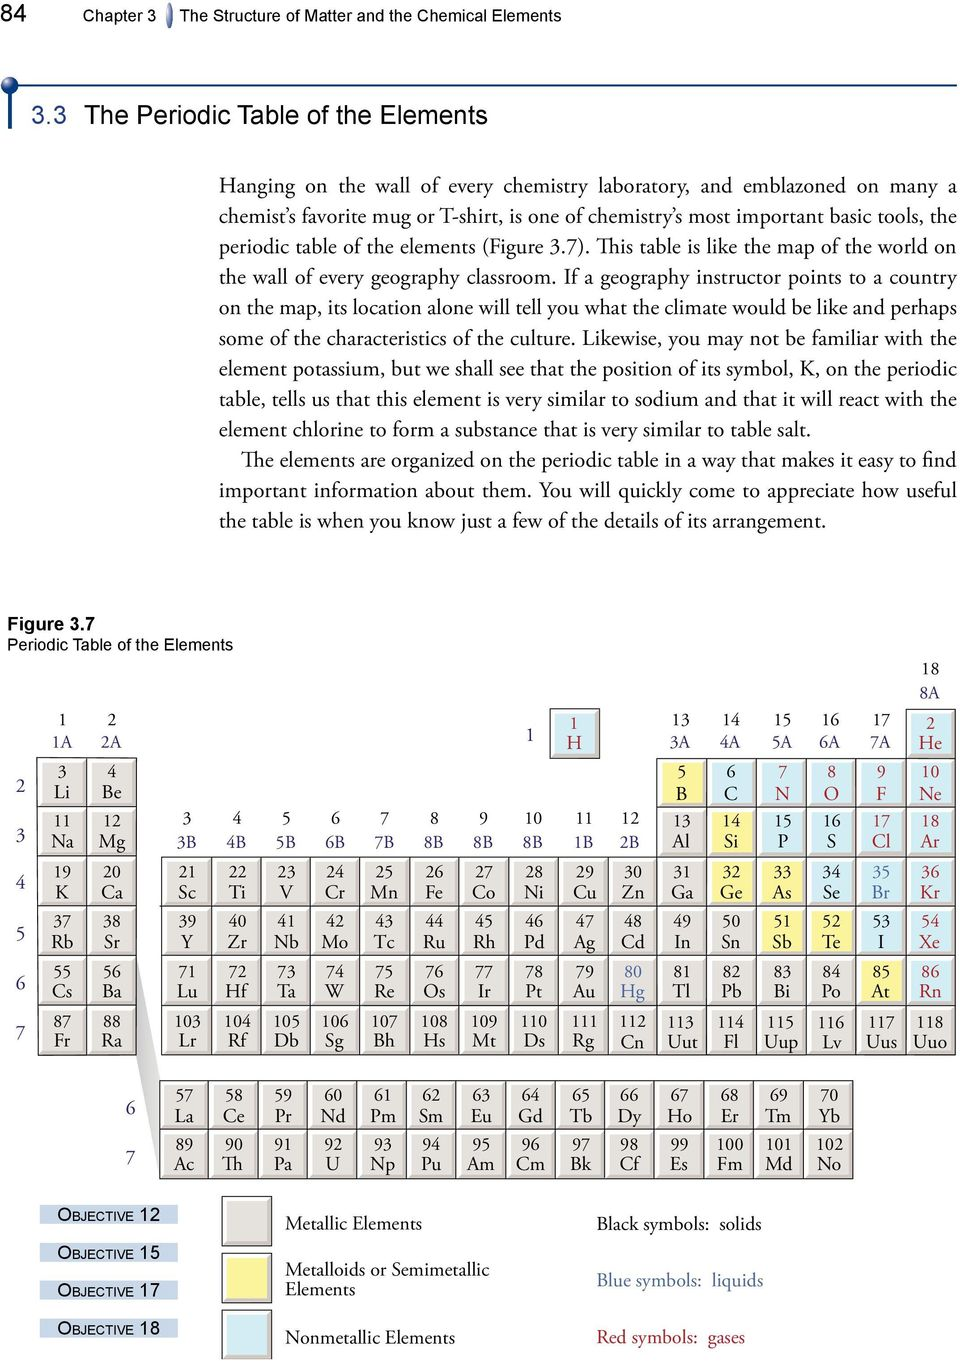 the periodic table of the elements (Figure 3.7). This table is like the map of the world on the wall of every geography classroom.